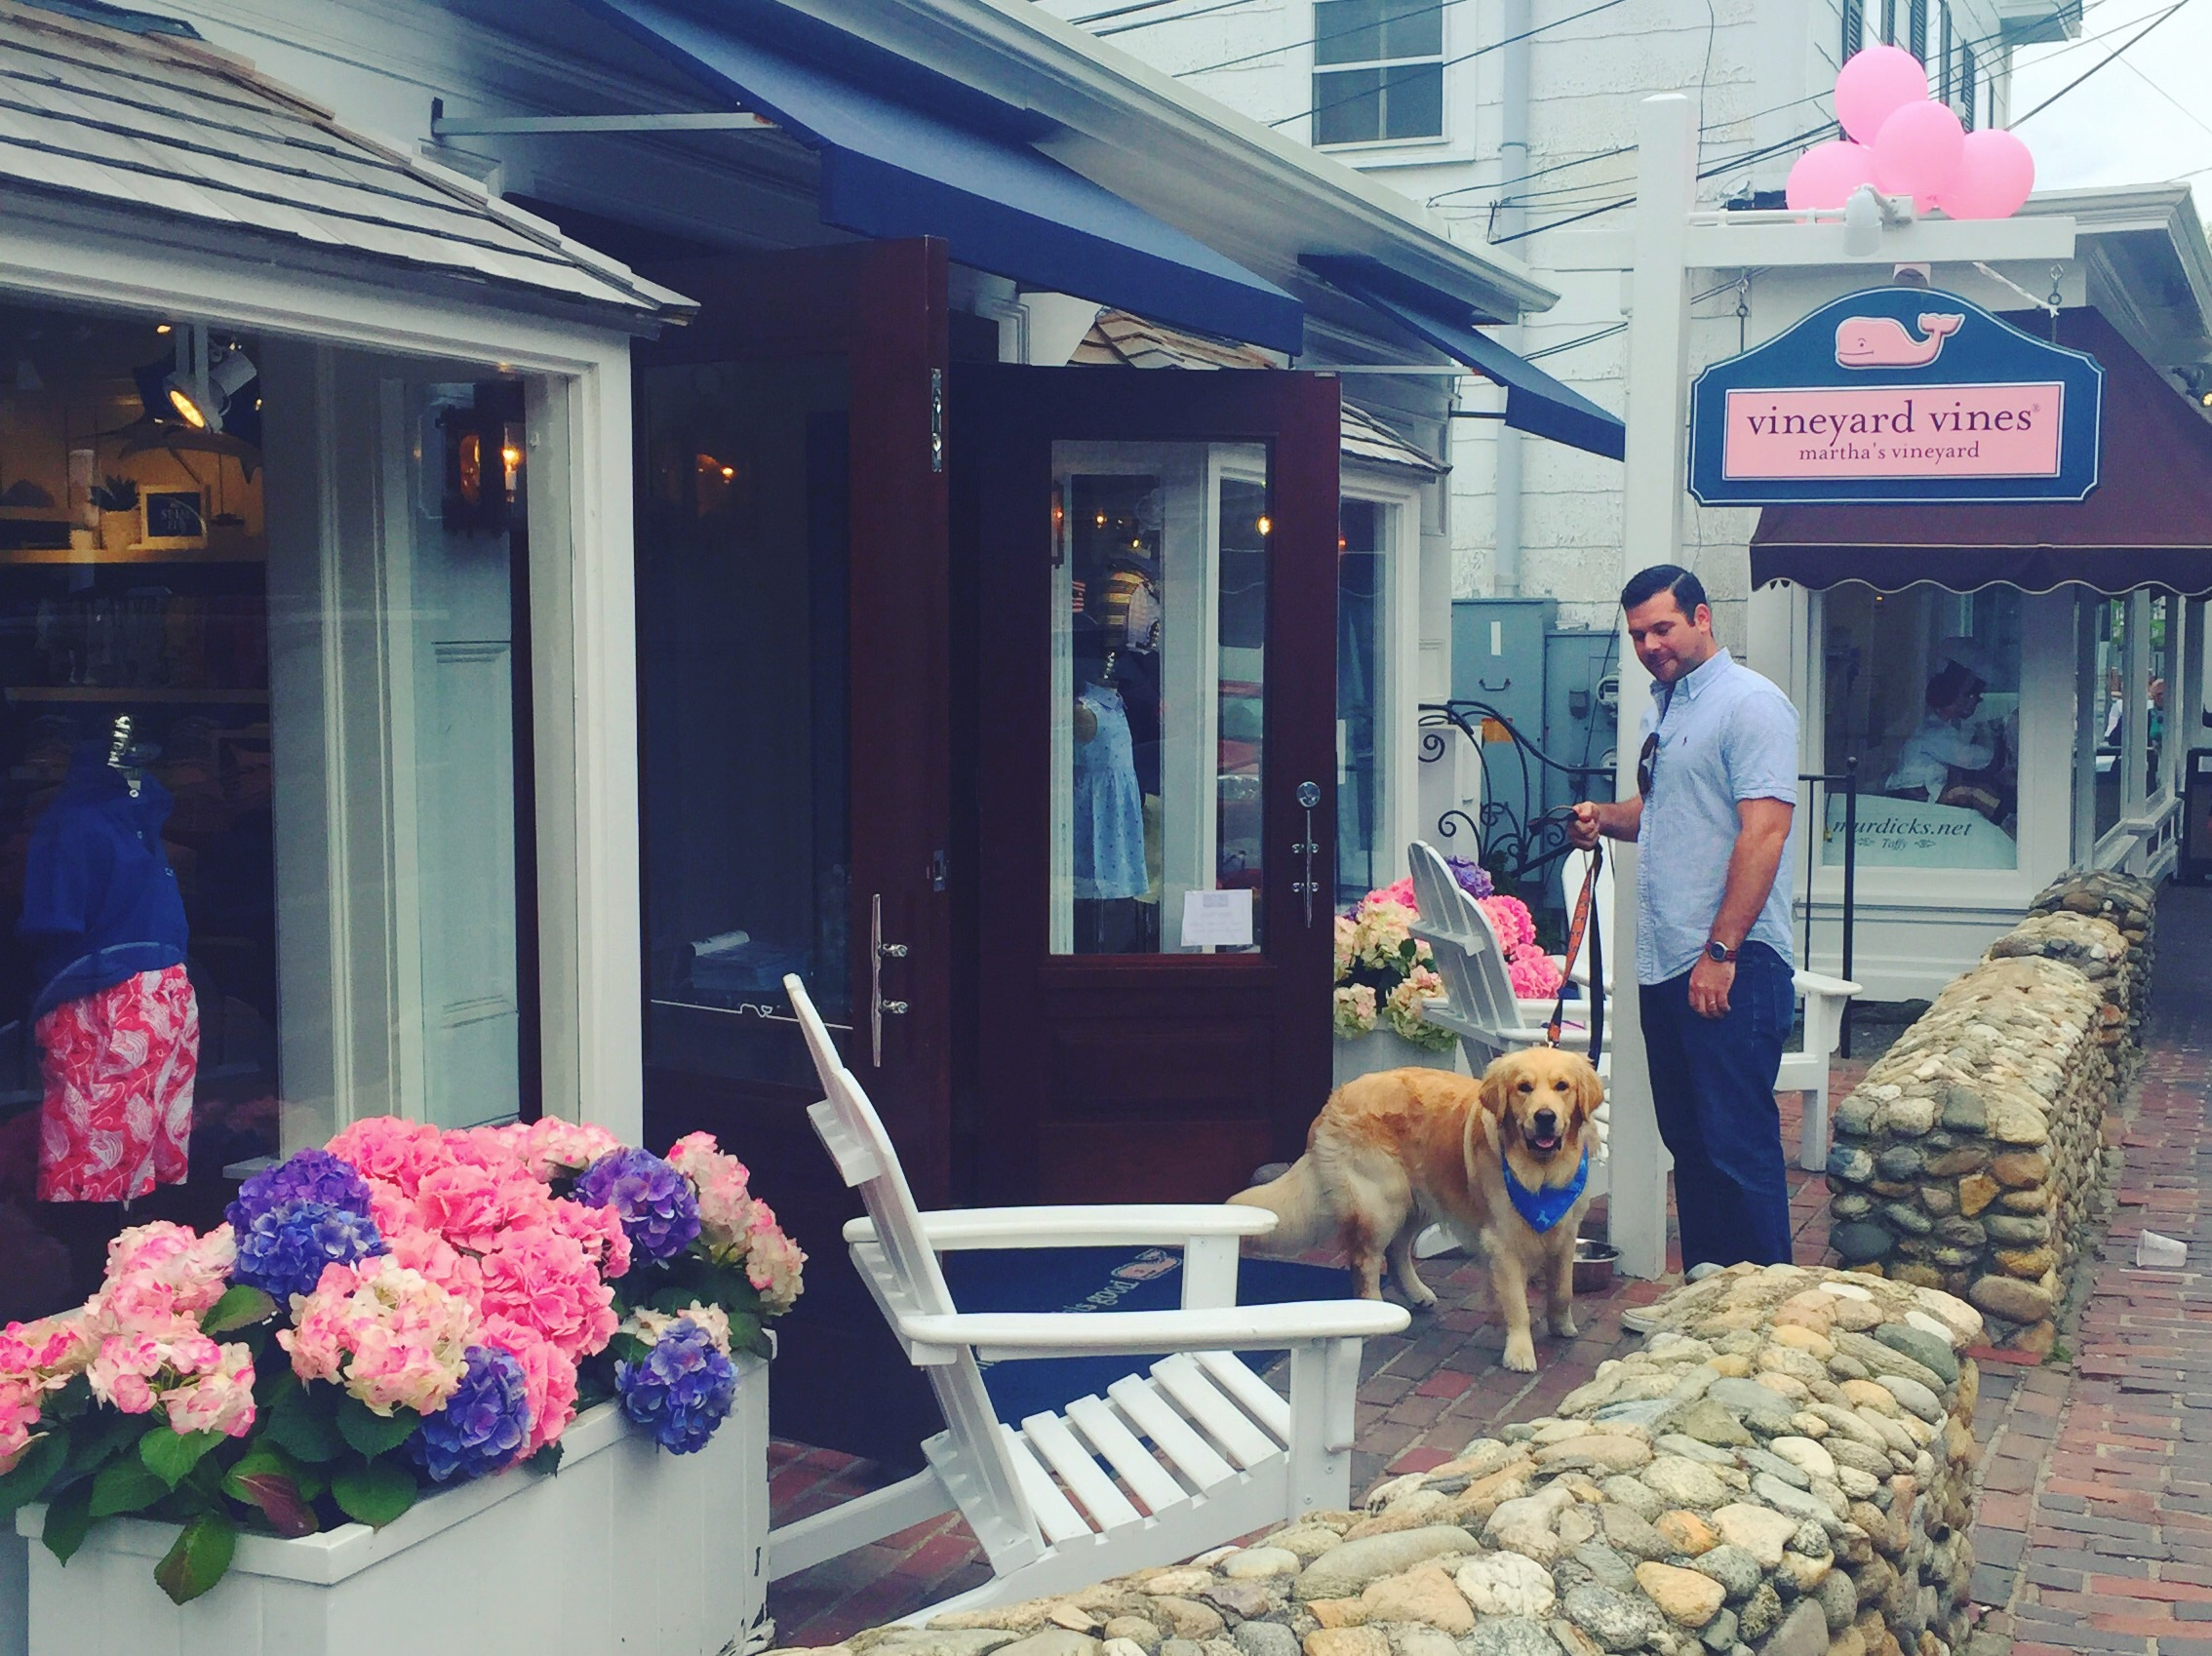 We got to got the the very first Vineyard Vines shop - so inspiring!